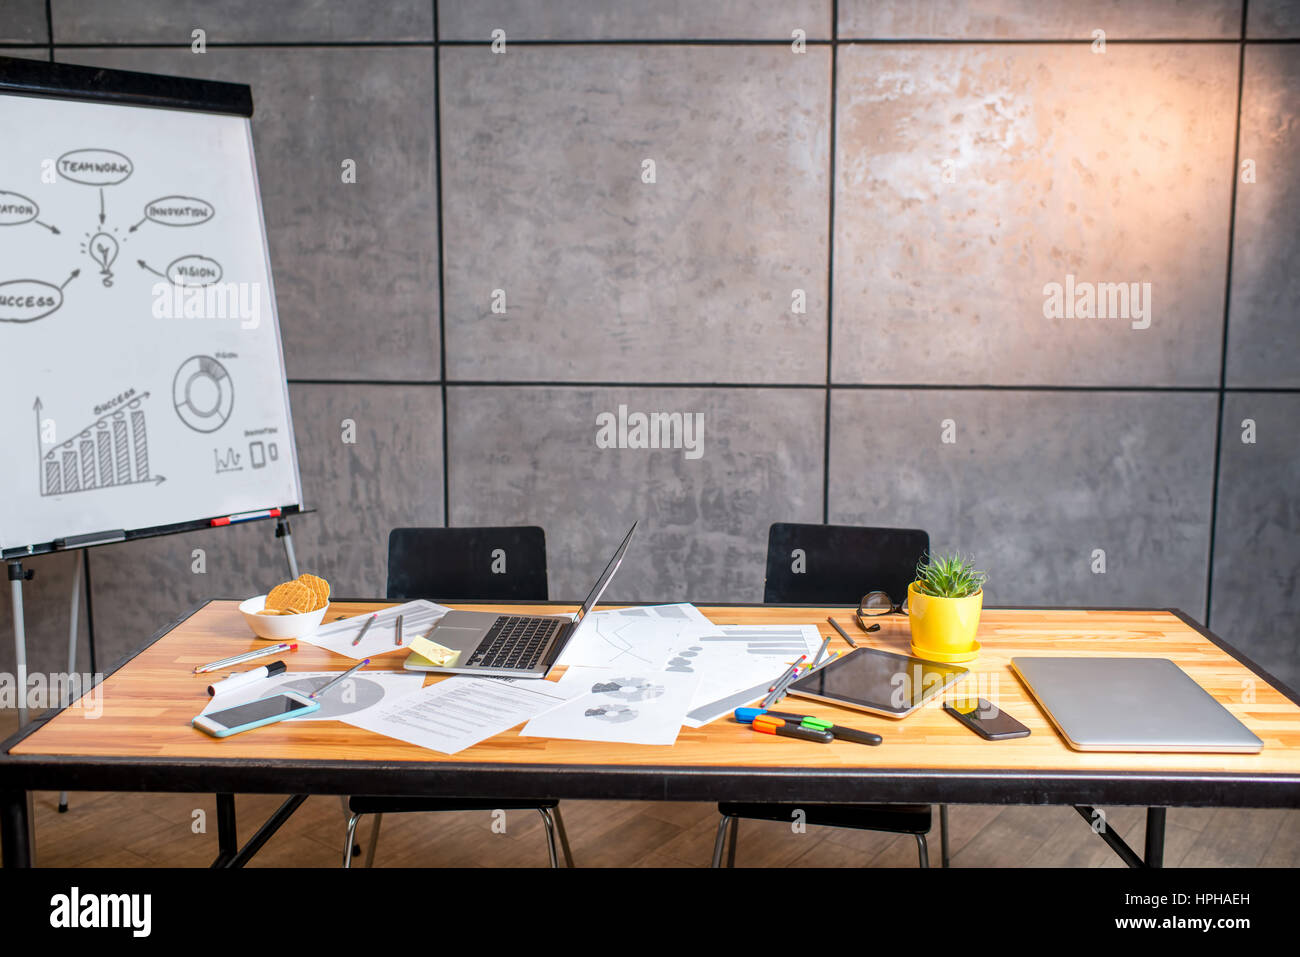 Working place with gadgets and whiteboard - Stock Image